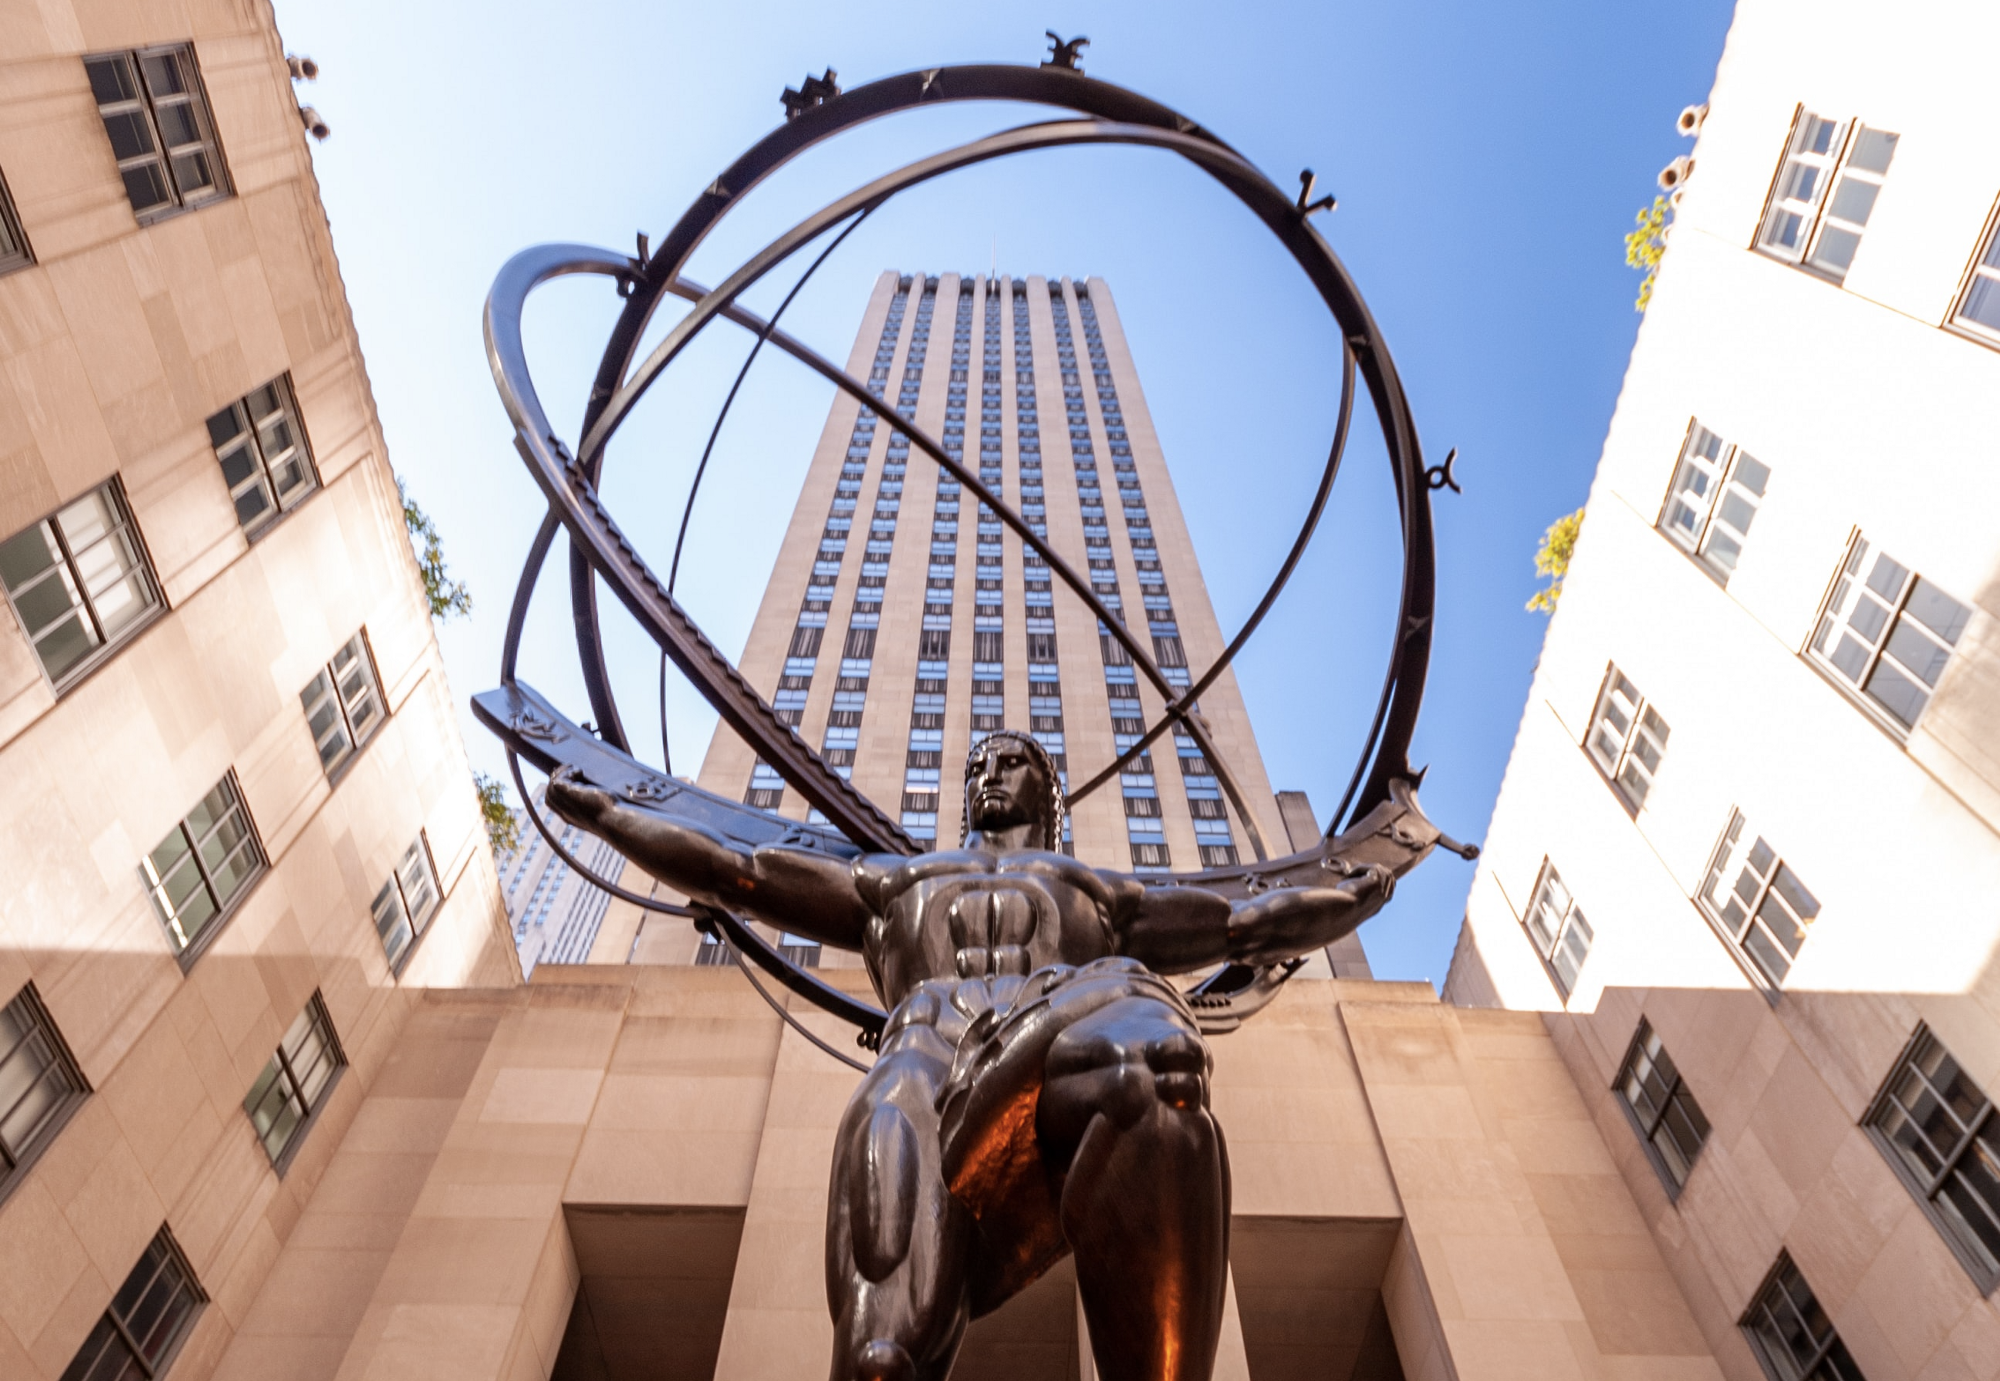 Sculpture of Atlas in front of Rockefeller Center. Photo by David Vives on Unsplash.